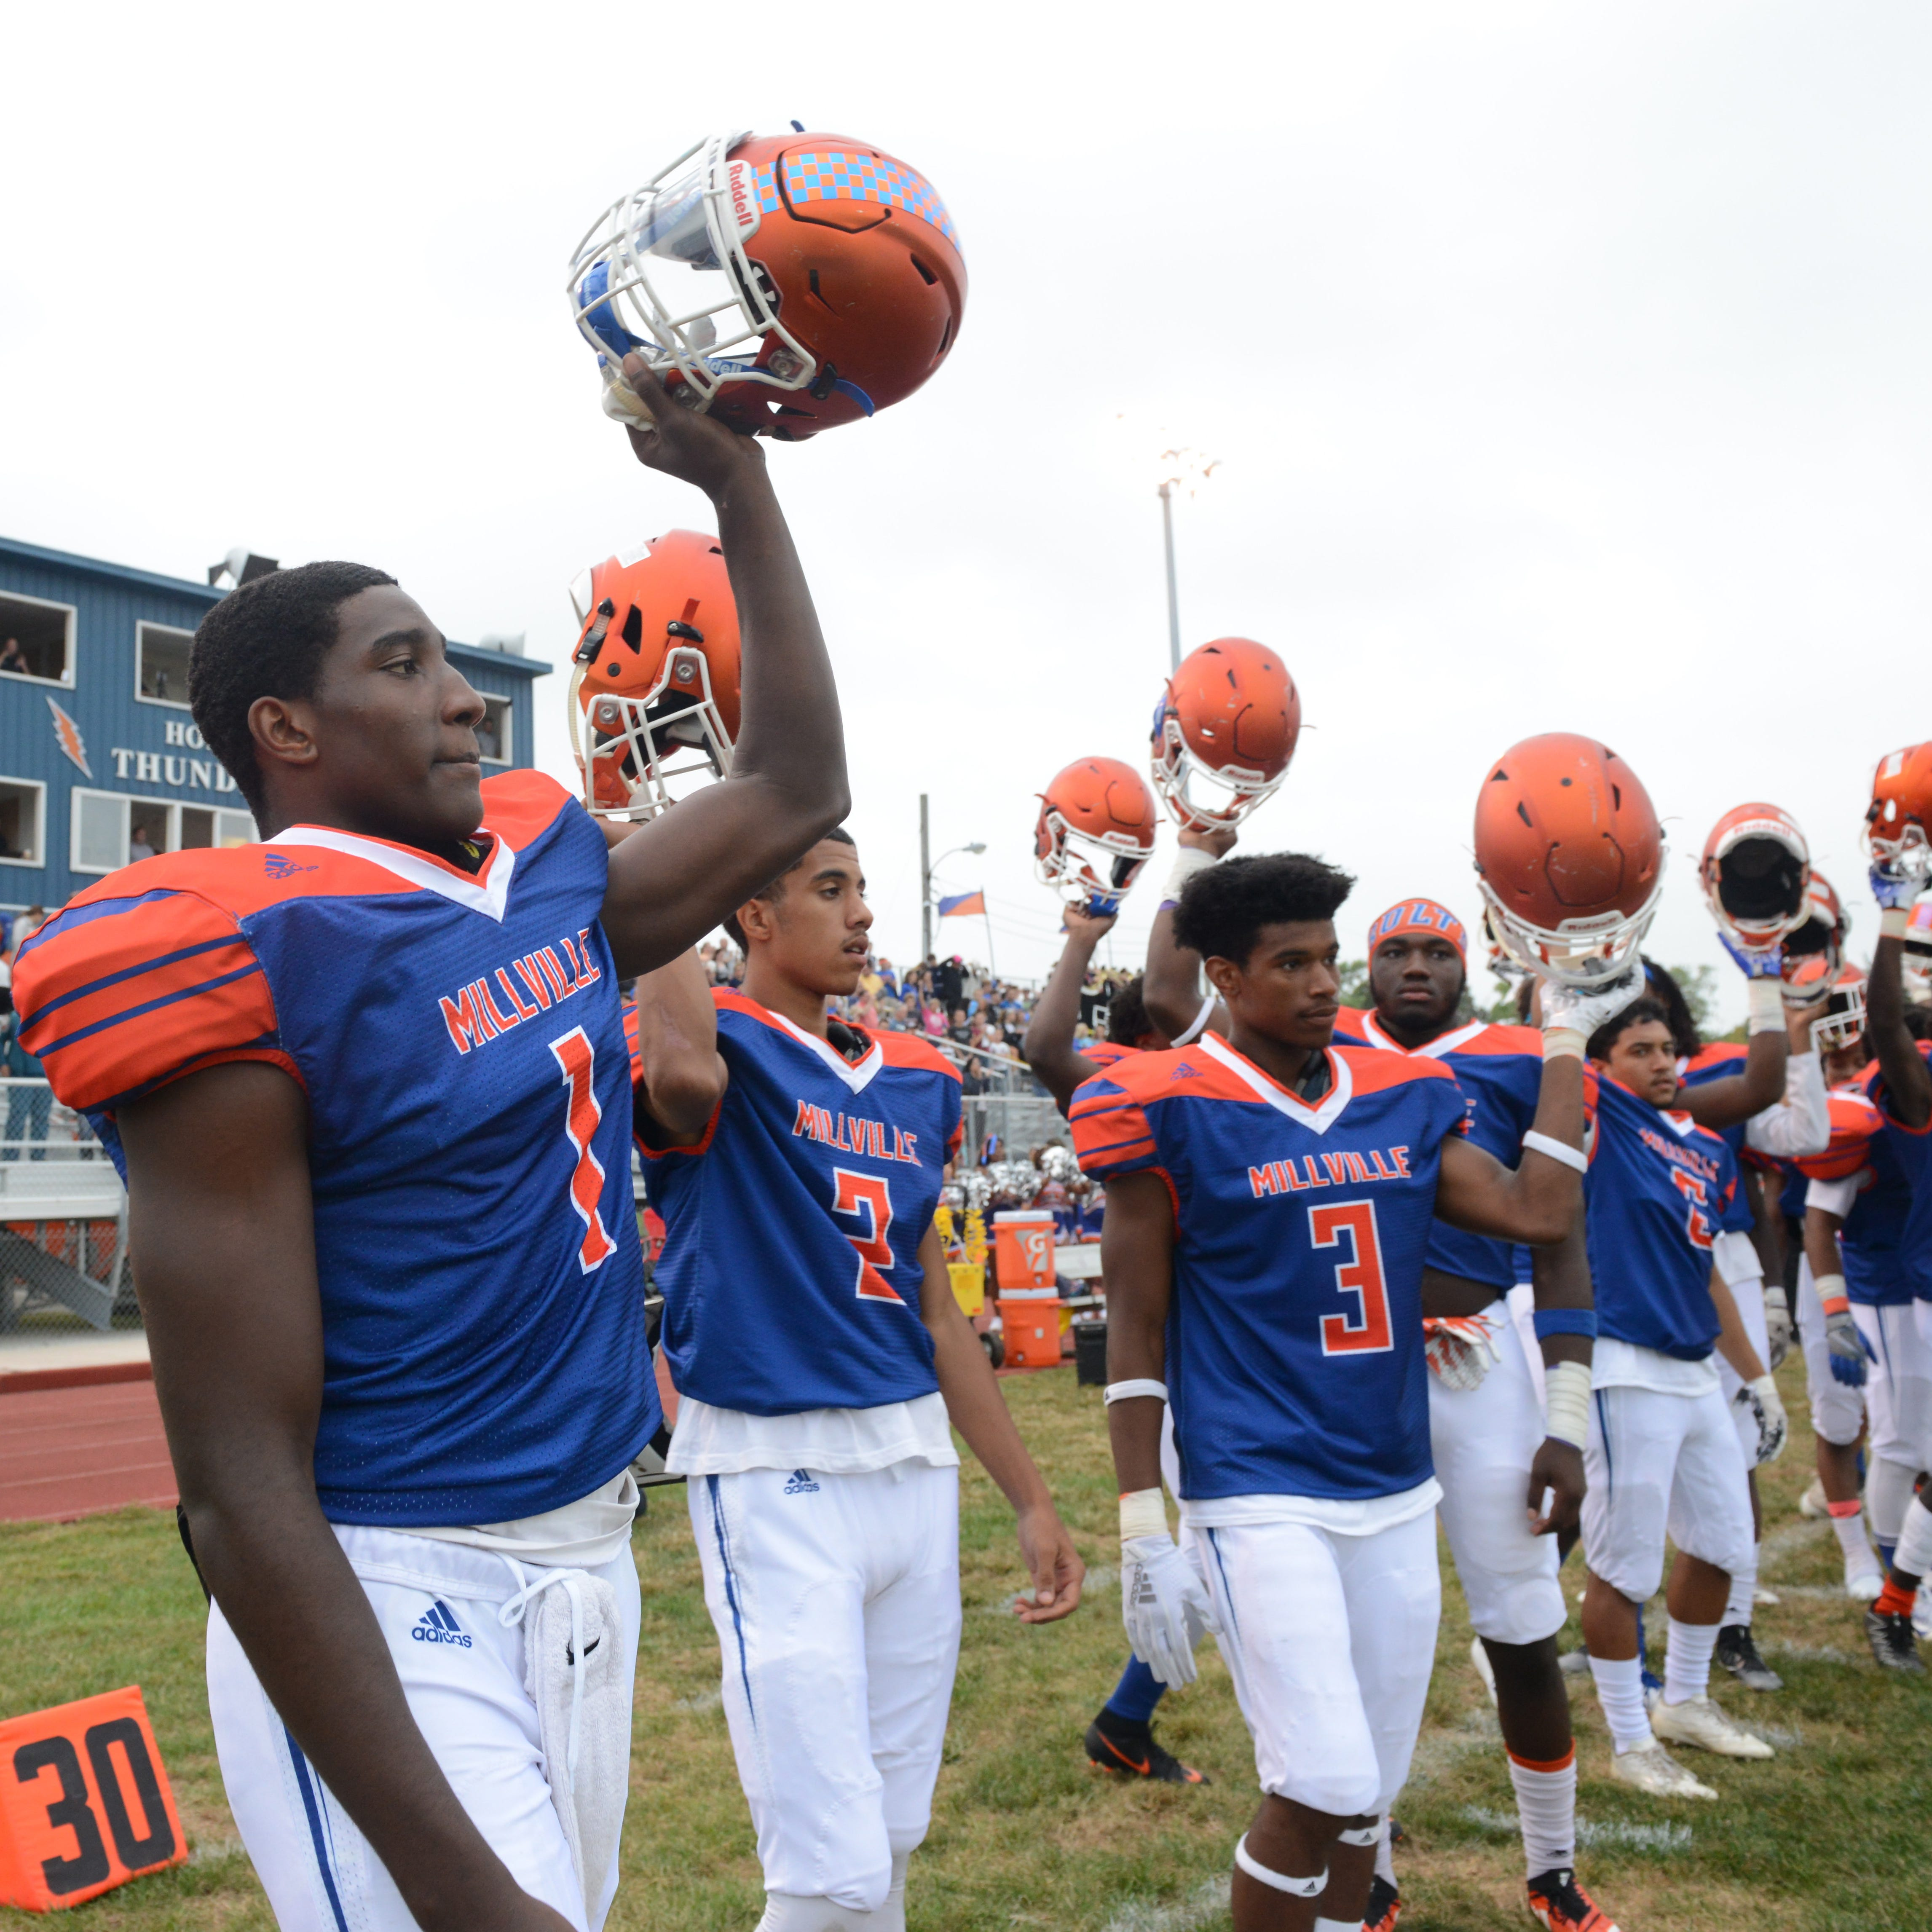 H.S. football: Has Millville weathered the storm?